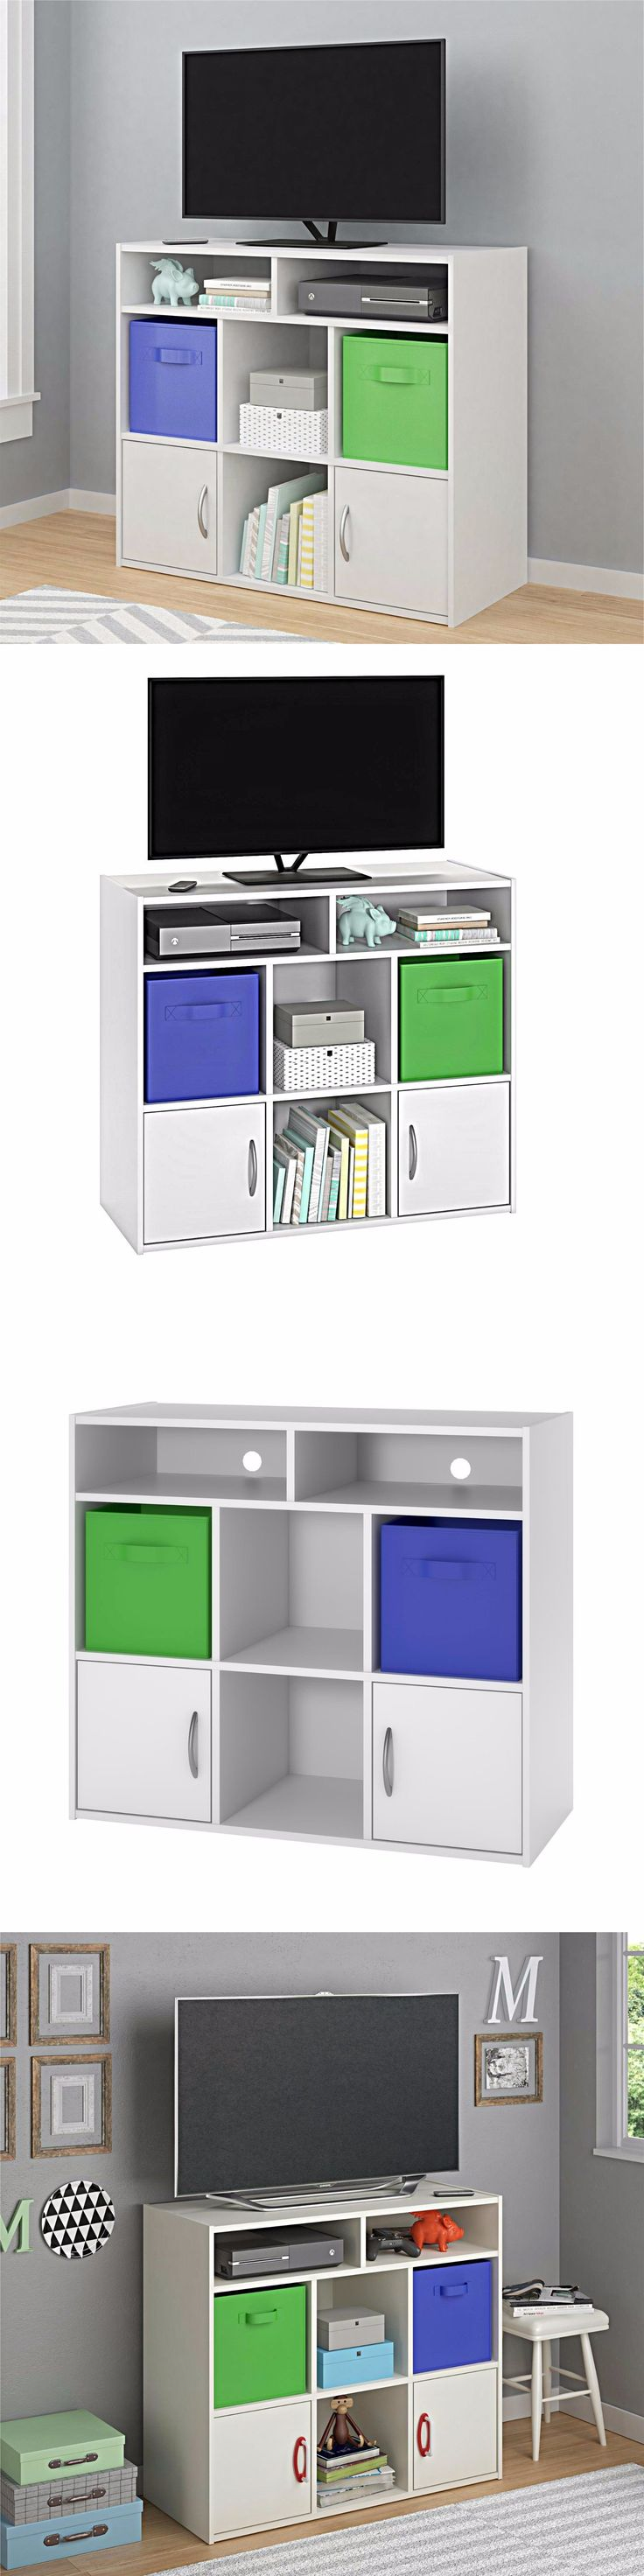 White tilt out clothes storage basket bin bathroom drawer ebay - Other Kids And Teens Furniture 66744 Small Tv Stand Storage Cabinets Dresser Media Doors Console